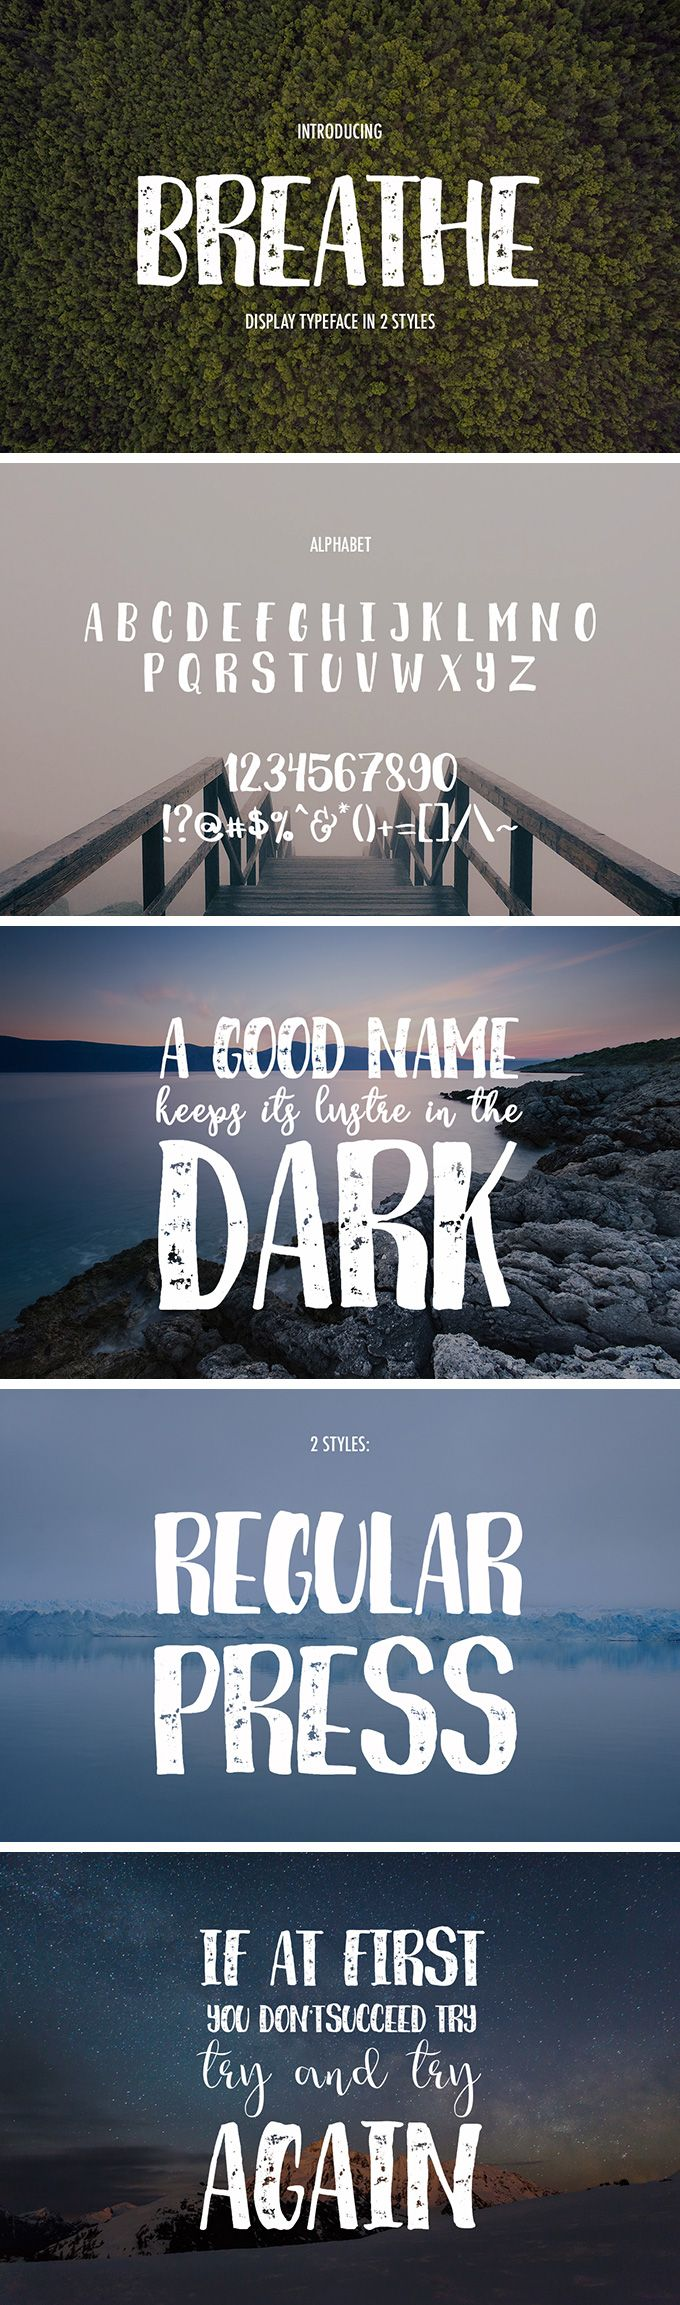 Breathe Font- FREE Get the Breathe, a new handwritten font in 2 styles available in all modern formats. Ideally suitable for the decoration of your works, design of logos, creation of invitations, greeting card and more! We thank MediaLab team for providing us with this wonderful freebie.